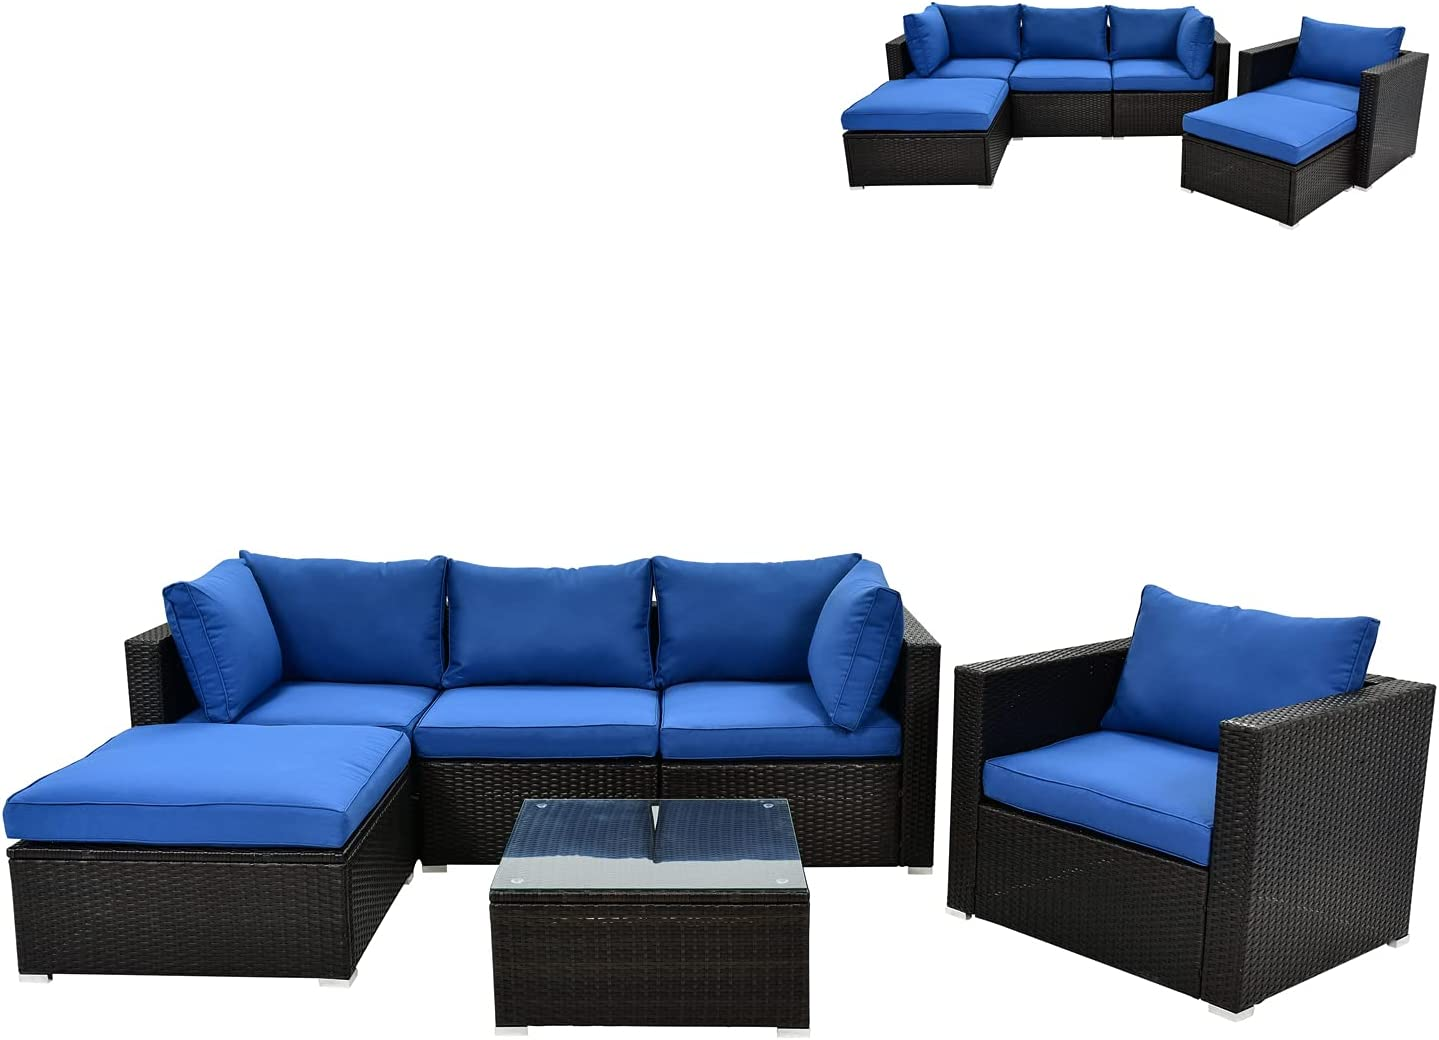 Daxue 6 sold out Pcs Patio Furniture Conversat Set Sofa Challenge the lowest price of Japan ☆ Sectional Outdoor